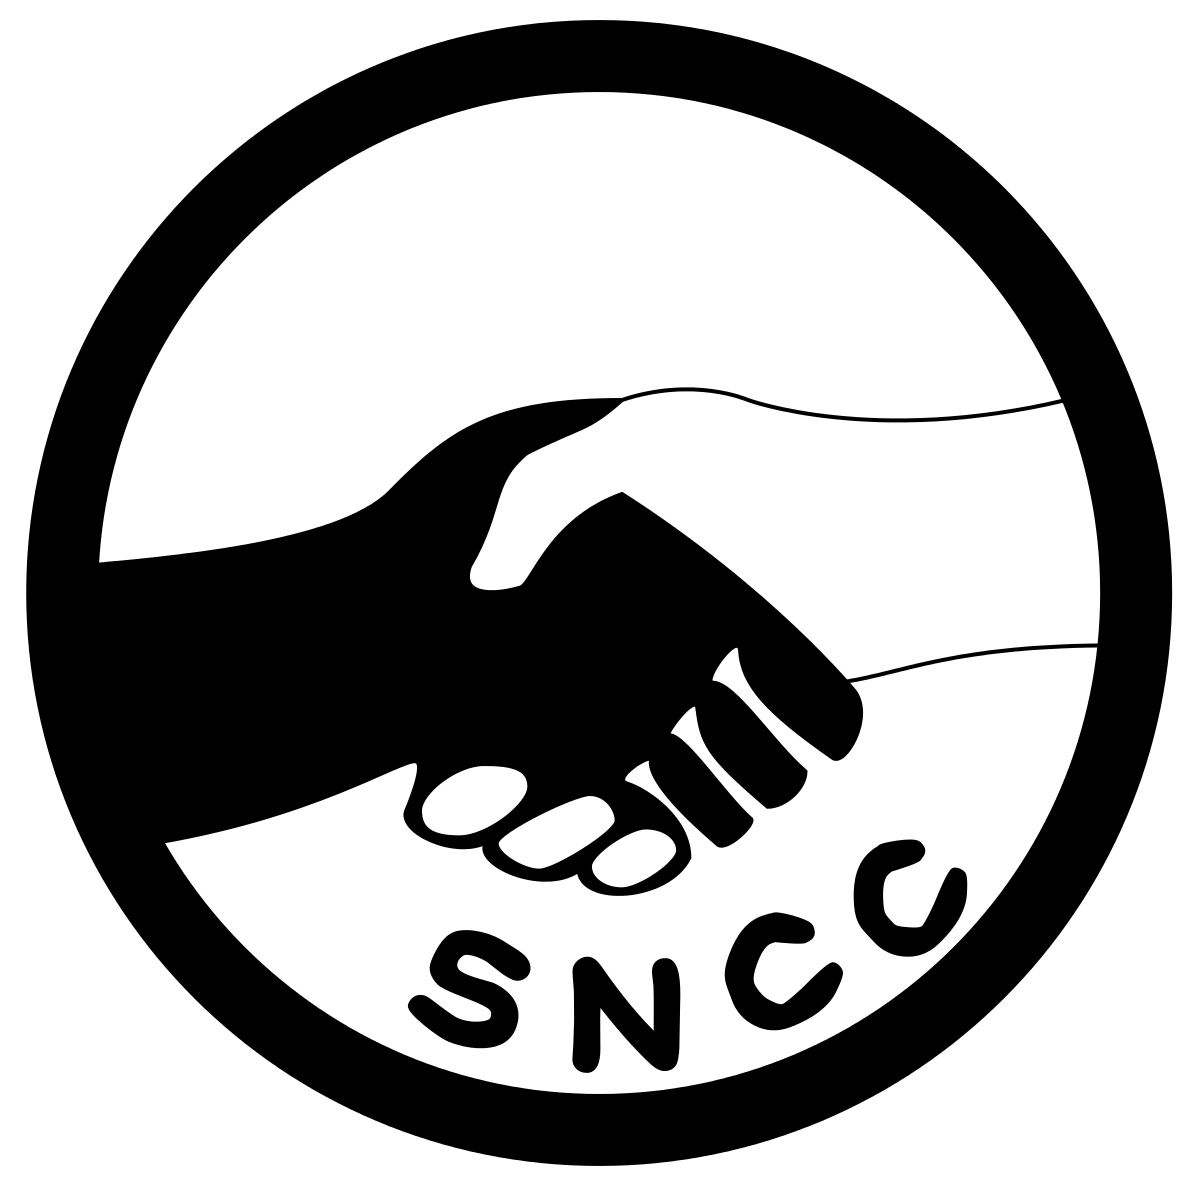 Congress of racial equality clipart jpg library stock Student Nonviolent Coordinating Committee - Wikipedia jpg library stock